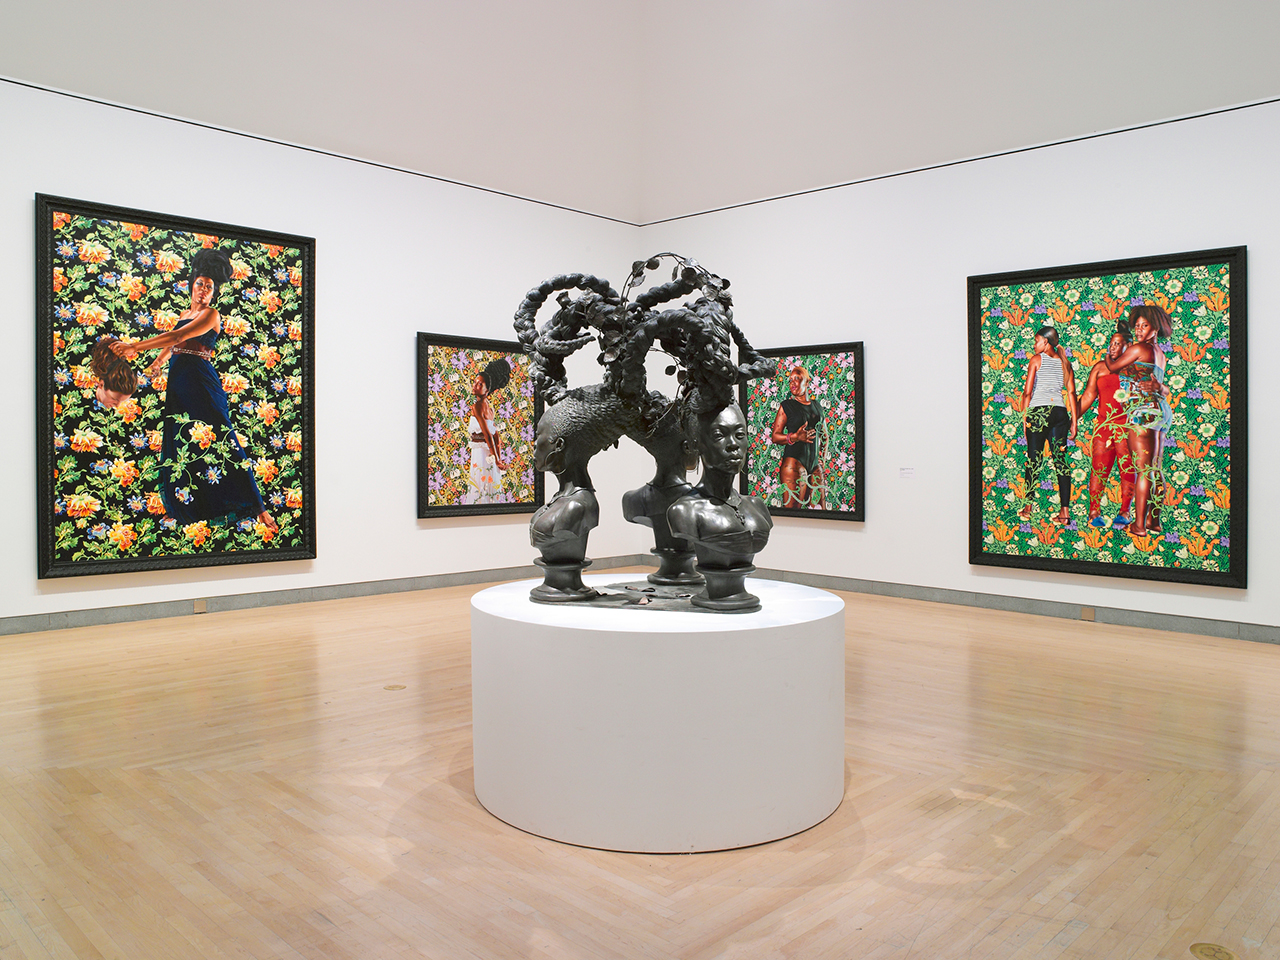 """Installation view, 'Kehinde Wiley: A New Republic' at the Brooklyn Museum, with """"Bound"""" (2014) in the center (photo by Jonathan Dorado, courtesy Brooklyn Museum)"""